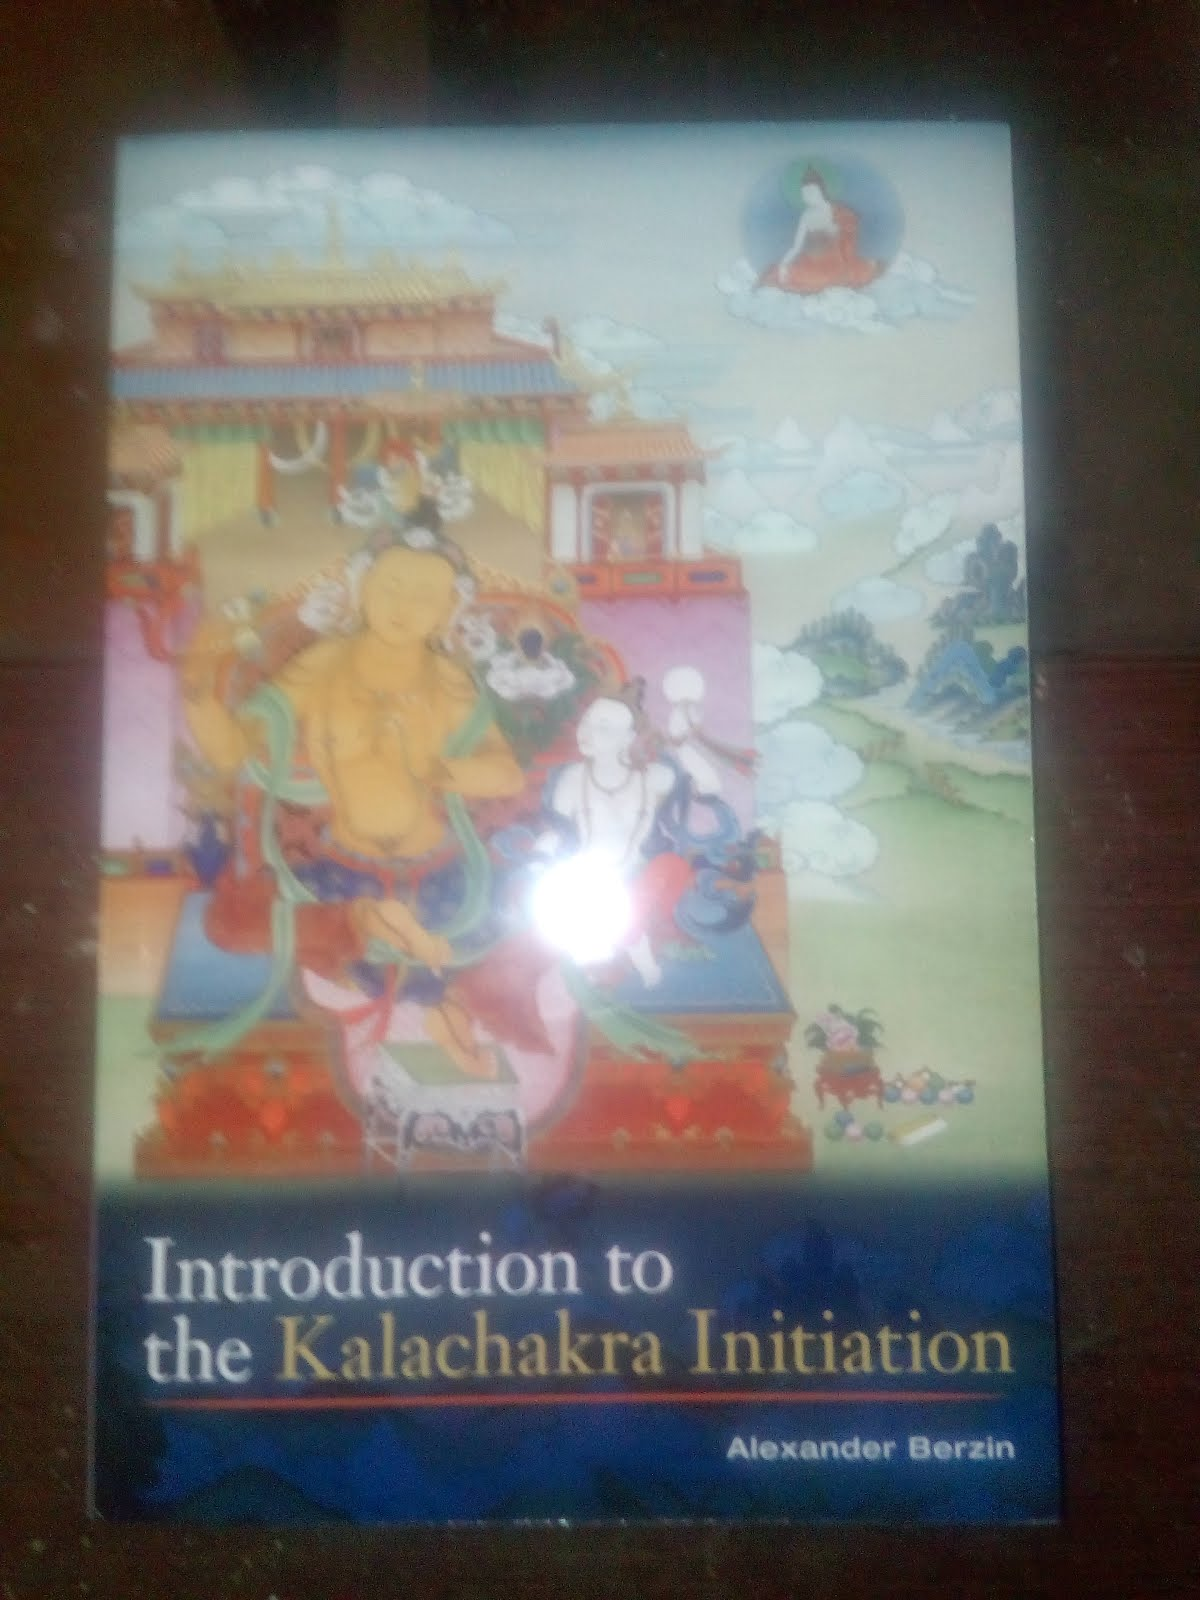 'Introduction to the Kalachakra Initiation' by Alexander Berzin.